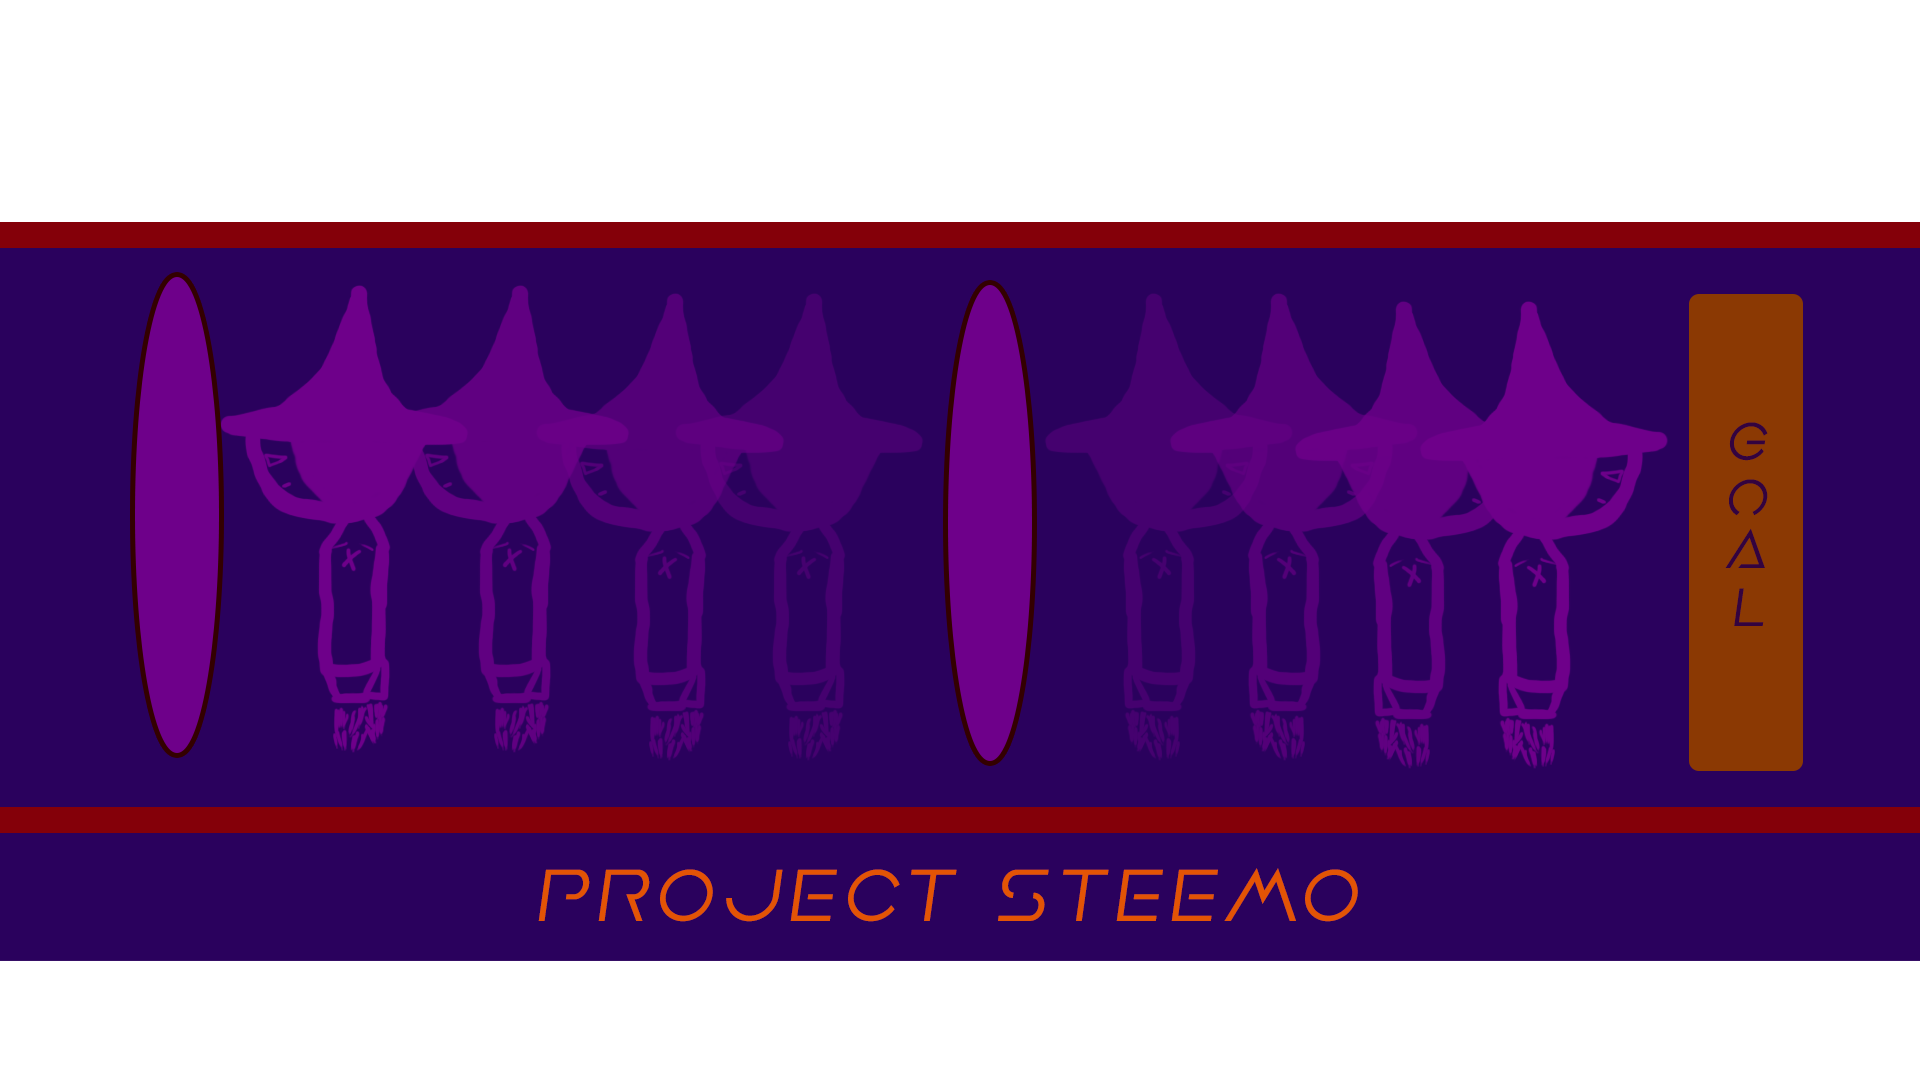 Project Steemo